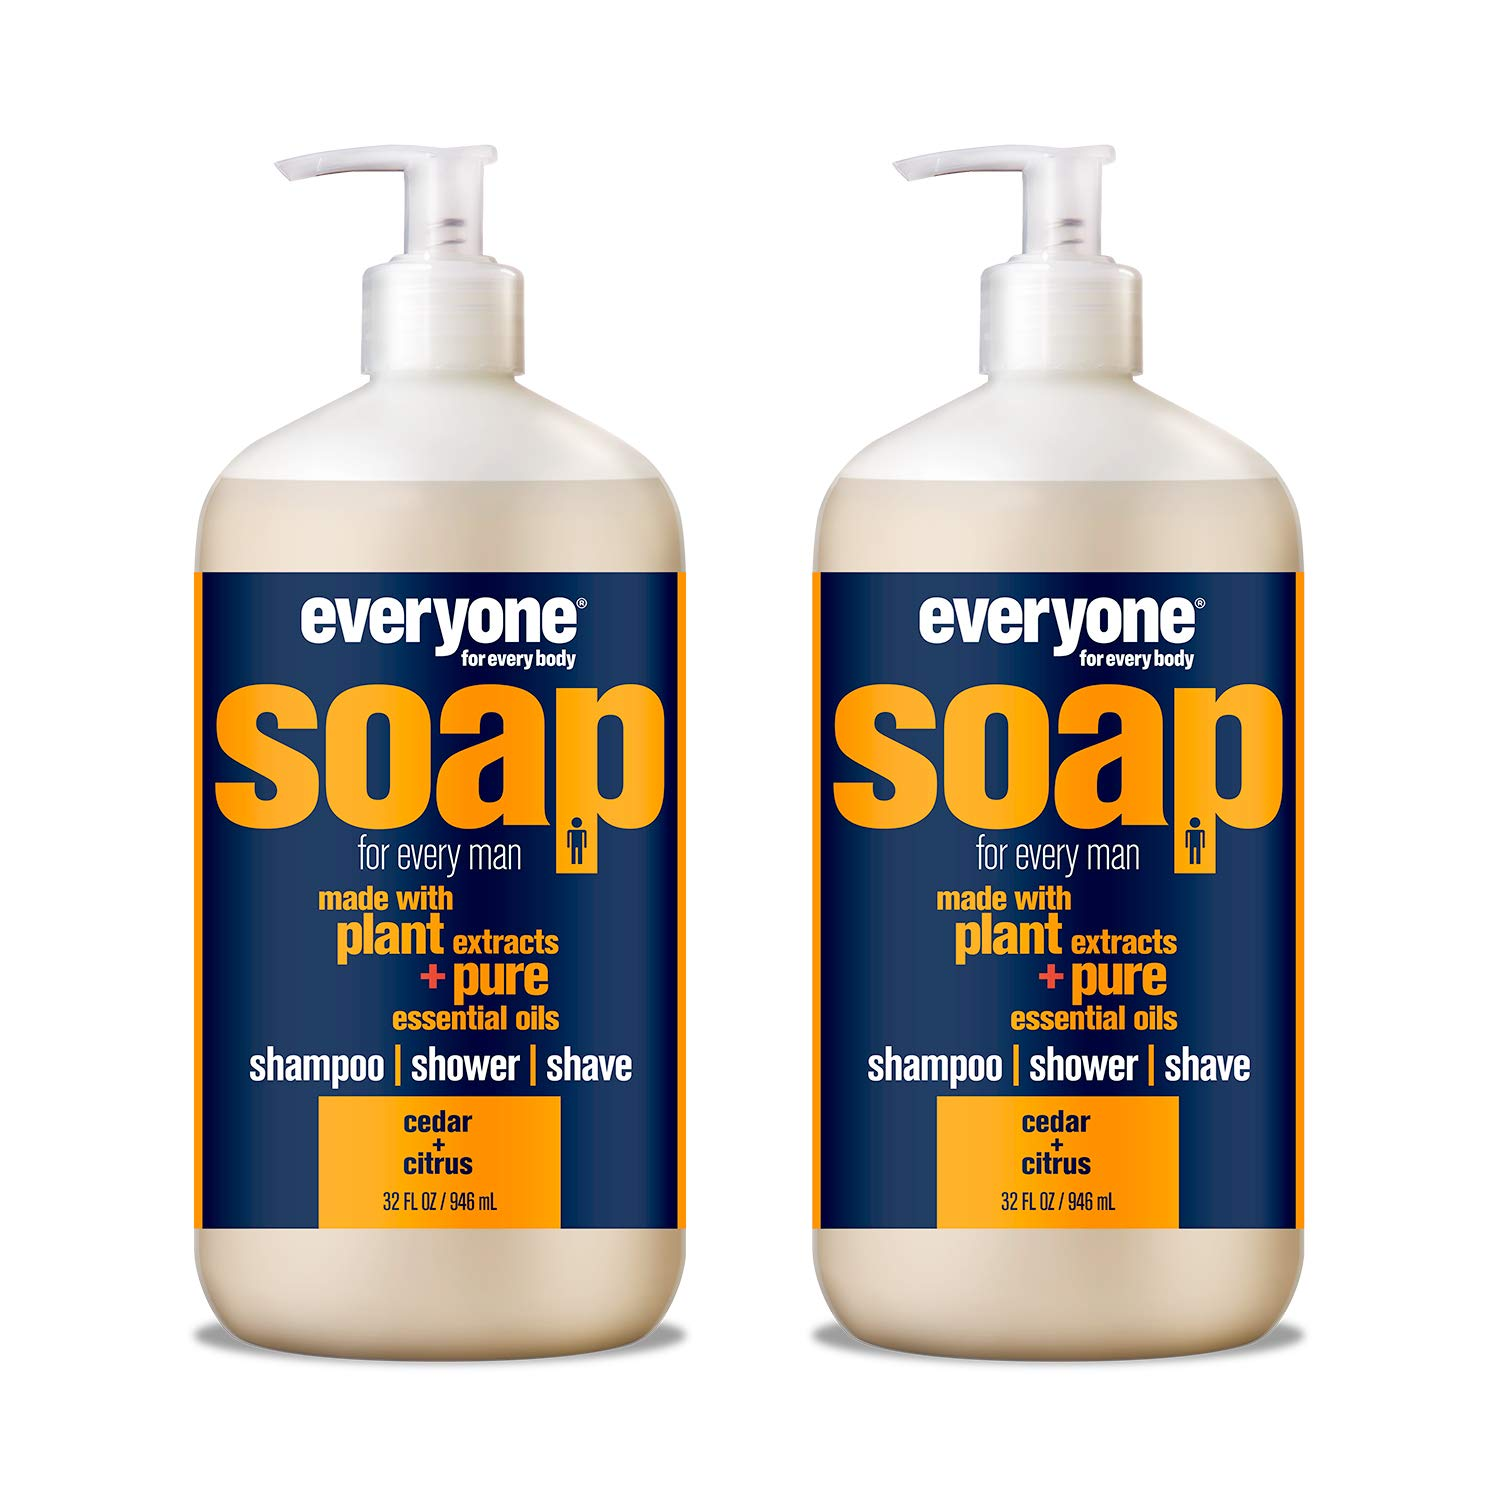 Everyone Men's 3-in-1 Soap - Body Wash, Shampoo, and Shave Gel - Cedar + Citrus, 32 Ounces, 2 Count by Everyone